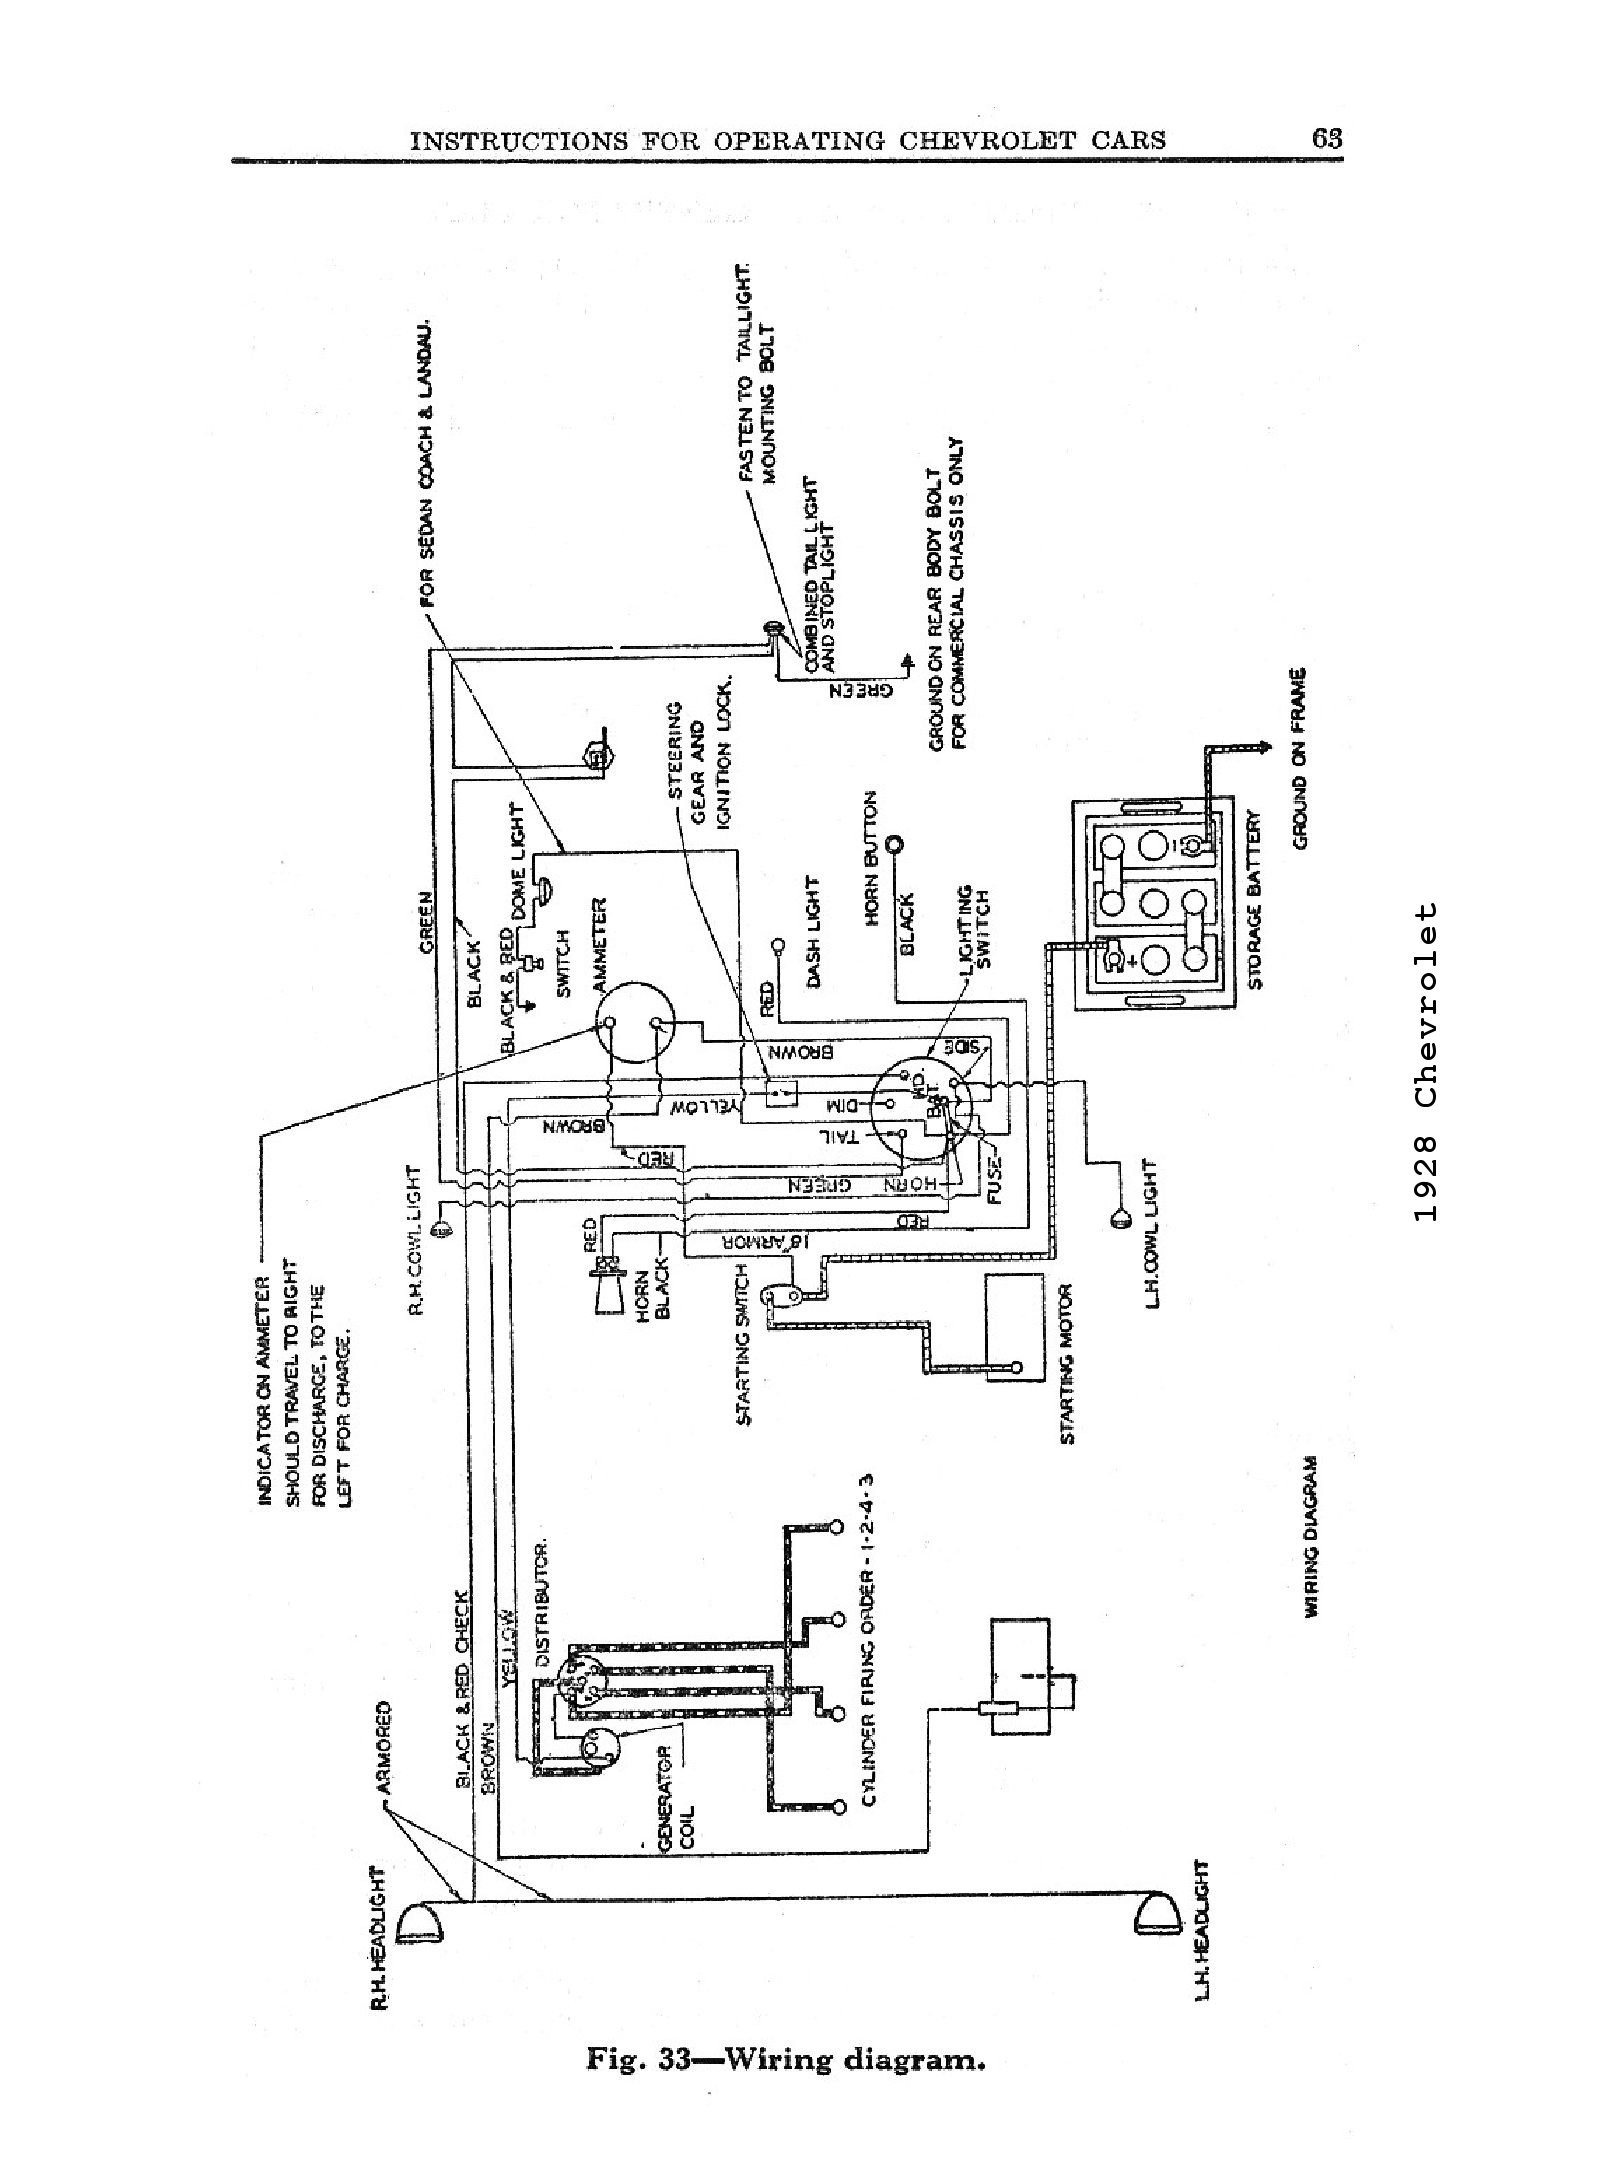 1963 Chevy Truck Wiring Diagram 57 65 Chevy Wiring